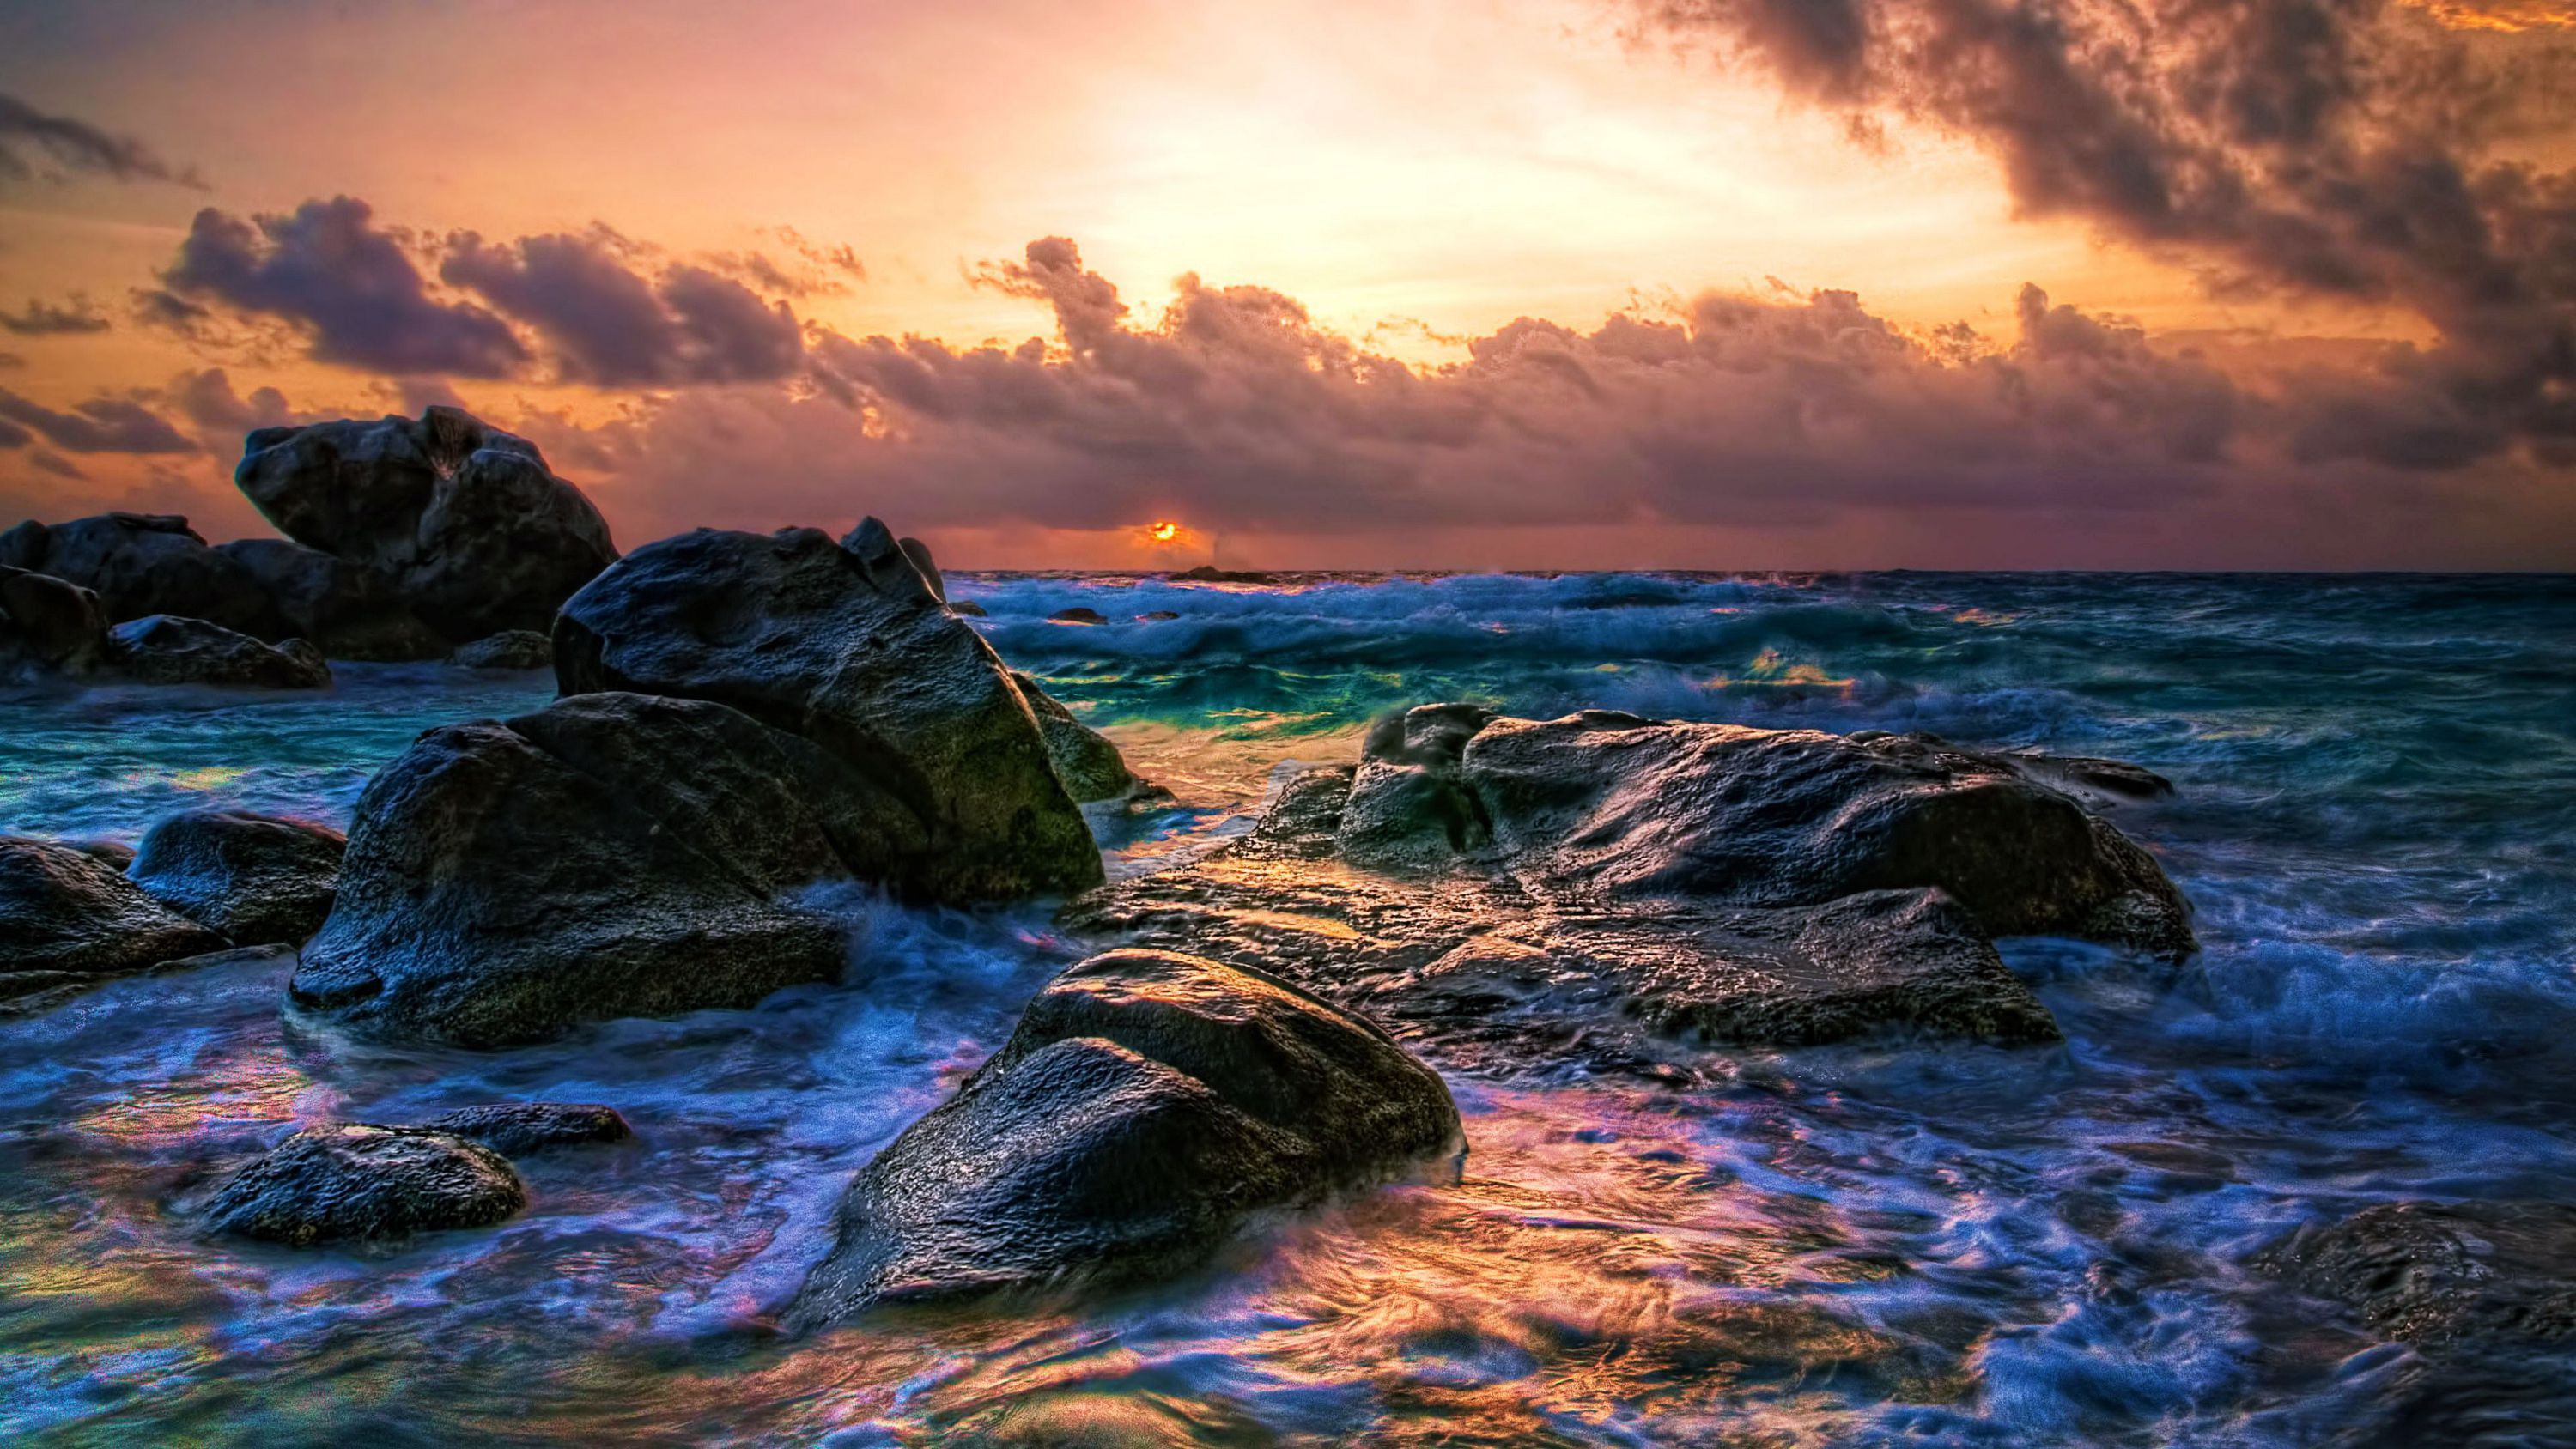 Beach Waves High Quality Wallpapers